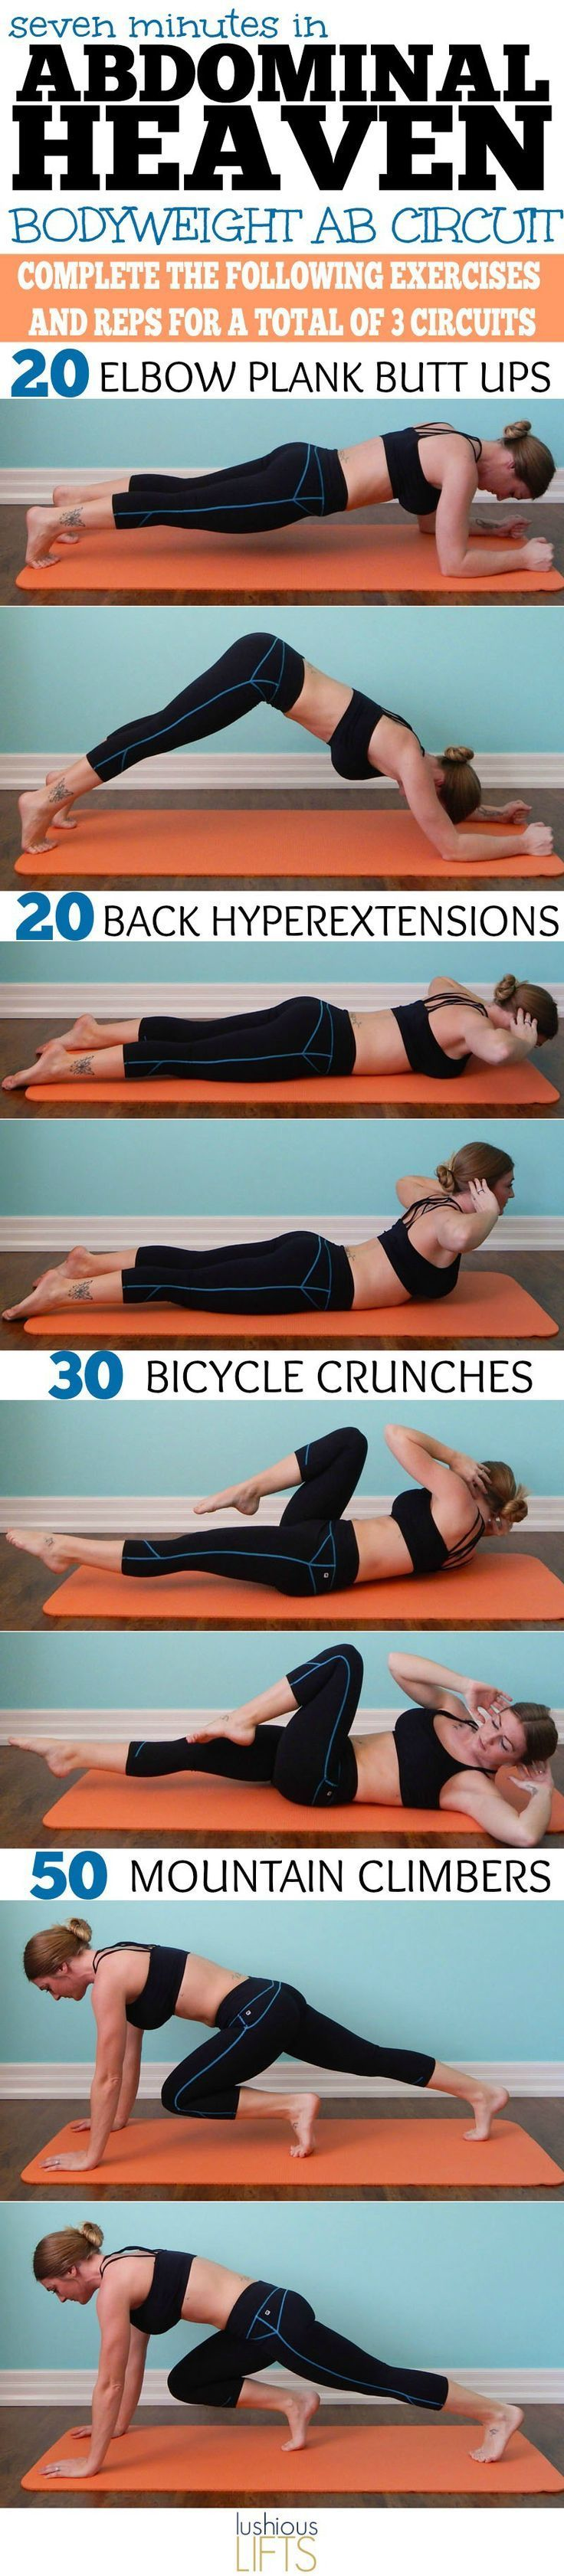 seven-minutes-in-abdominal-heaven-lushious-lifts-abdominal-circuit-workout , Follow PowerRecipes For More.